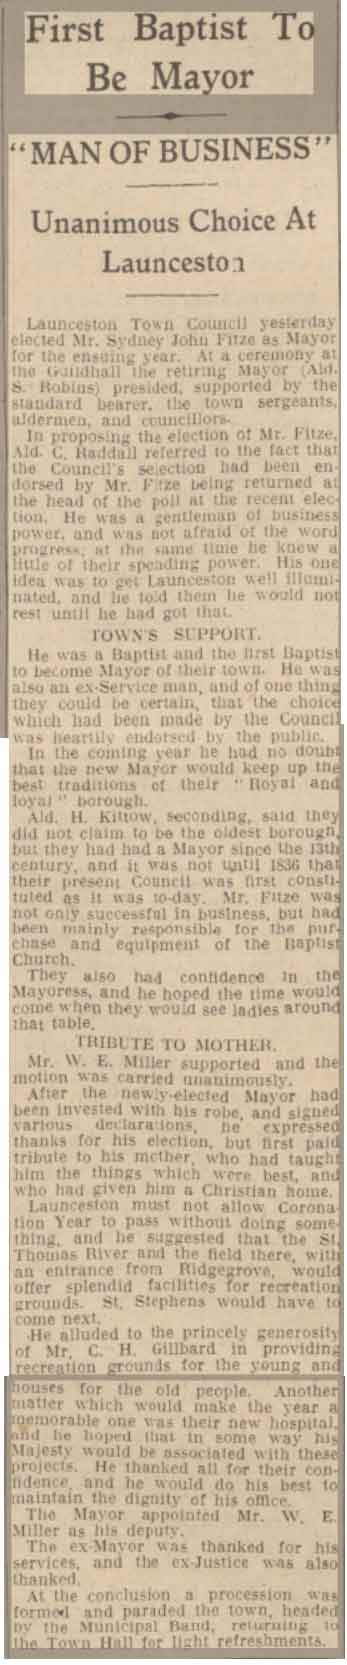 Article of Sidney becoming mayor in 1936.